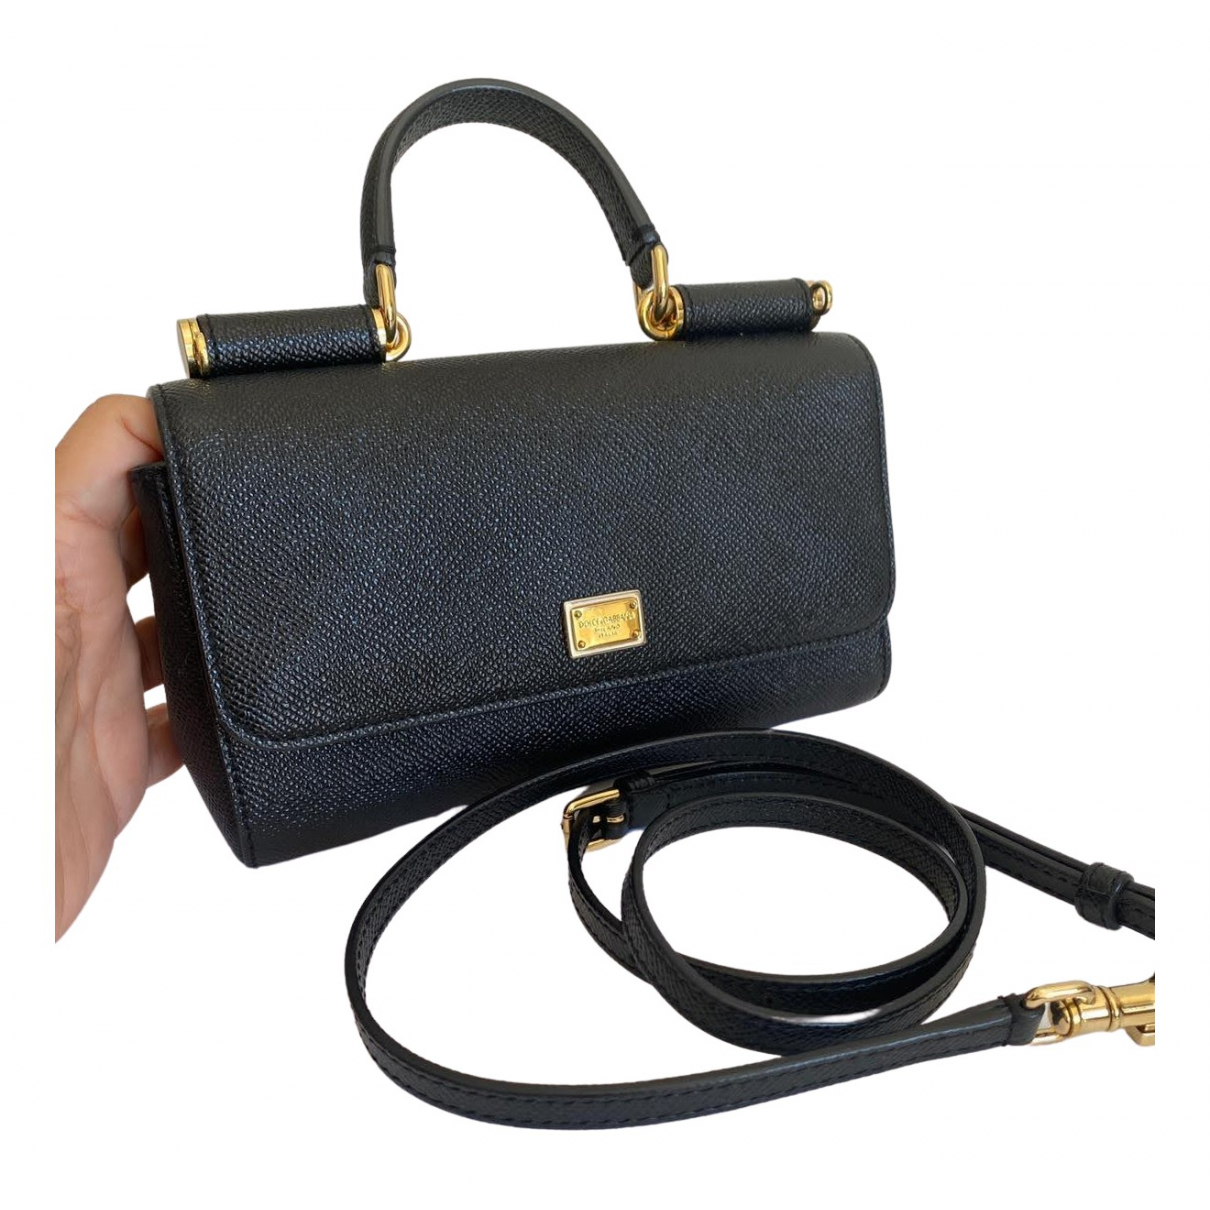 Dolce & Gabbana Sicily Black Leather Clutch bag for Women \N